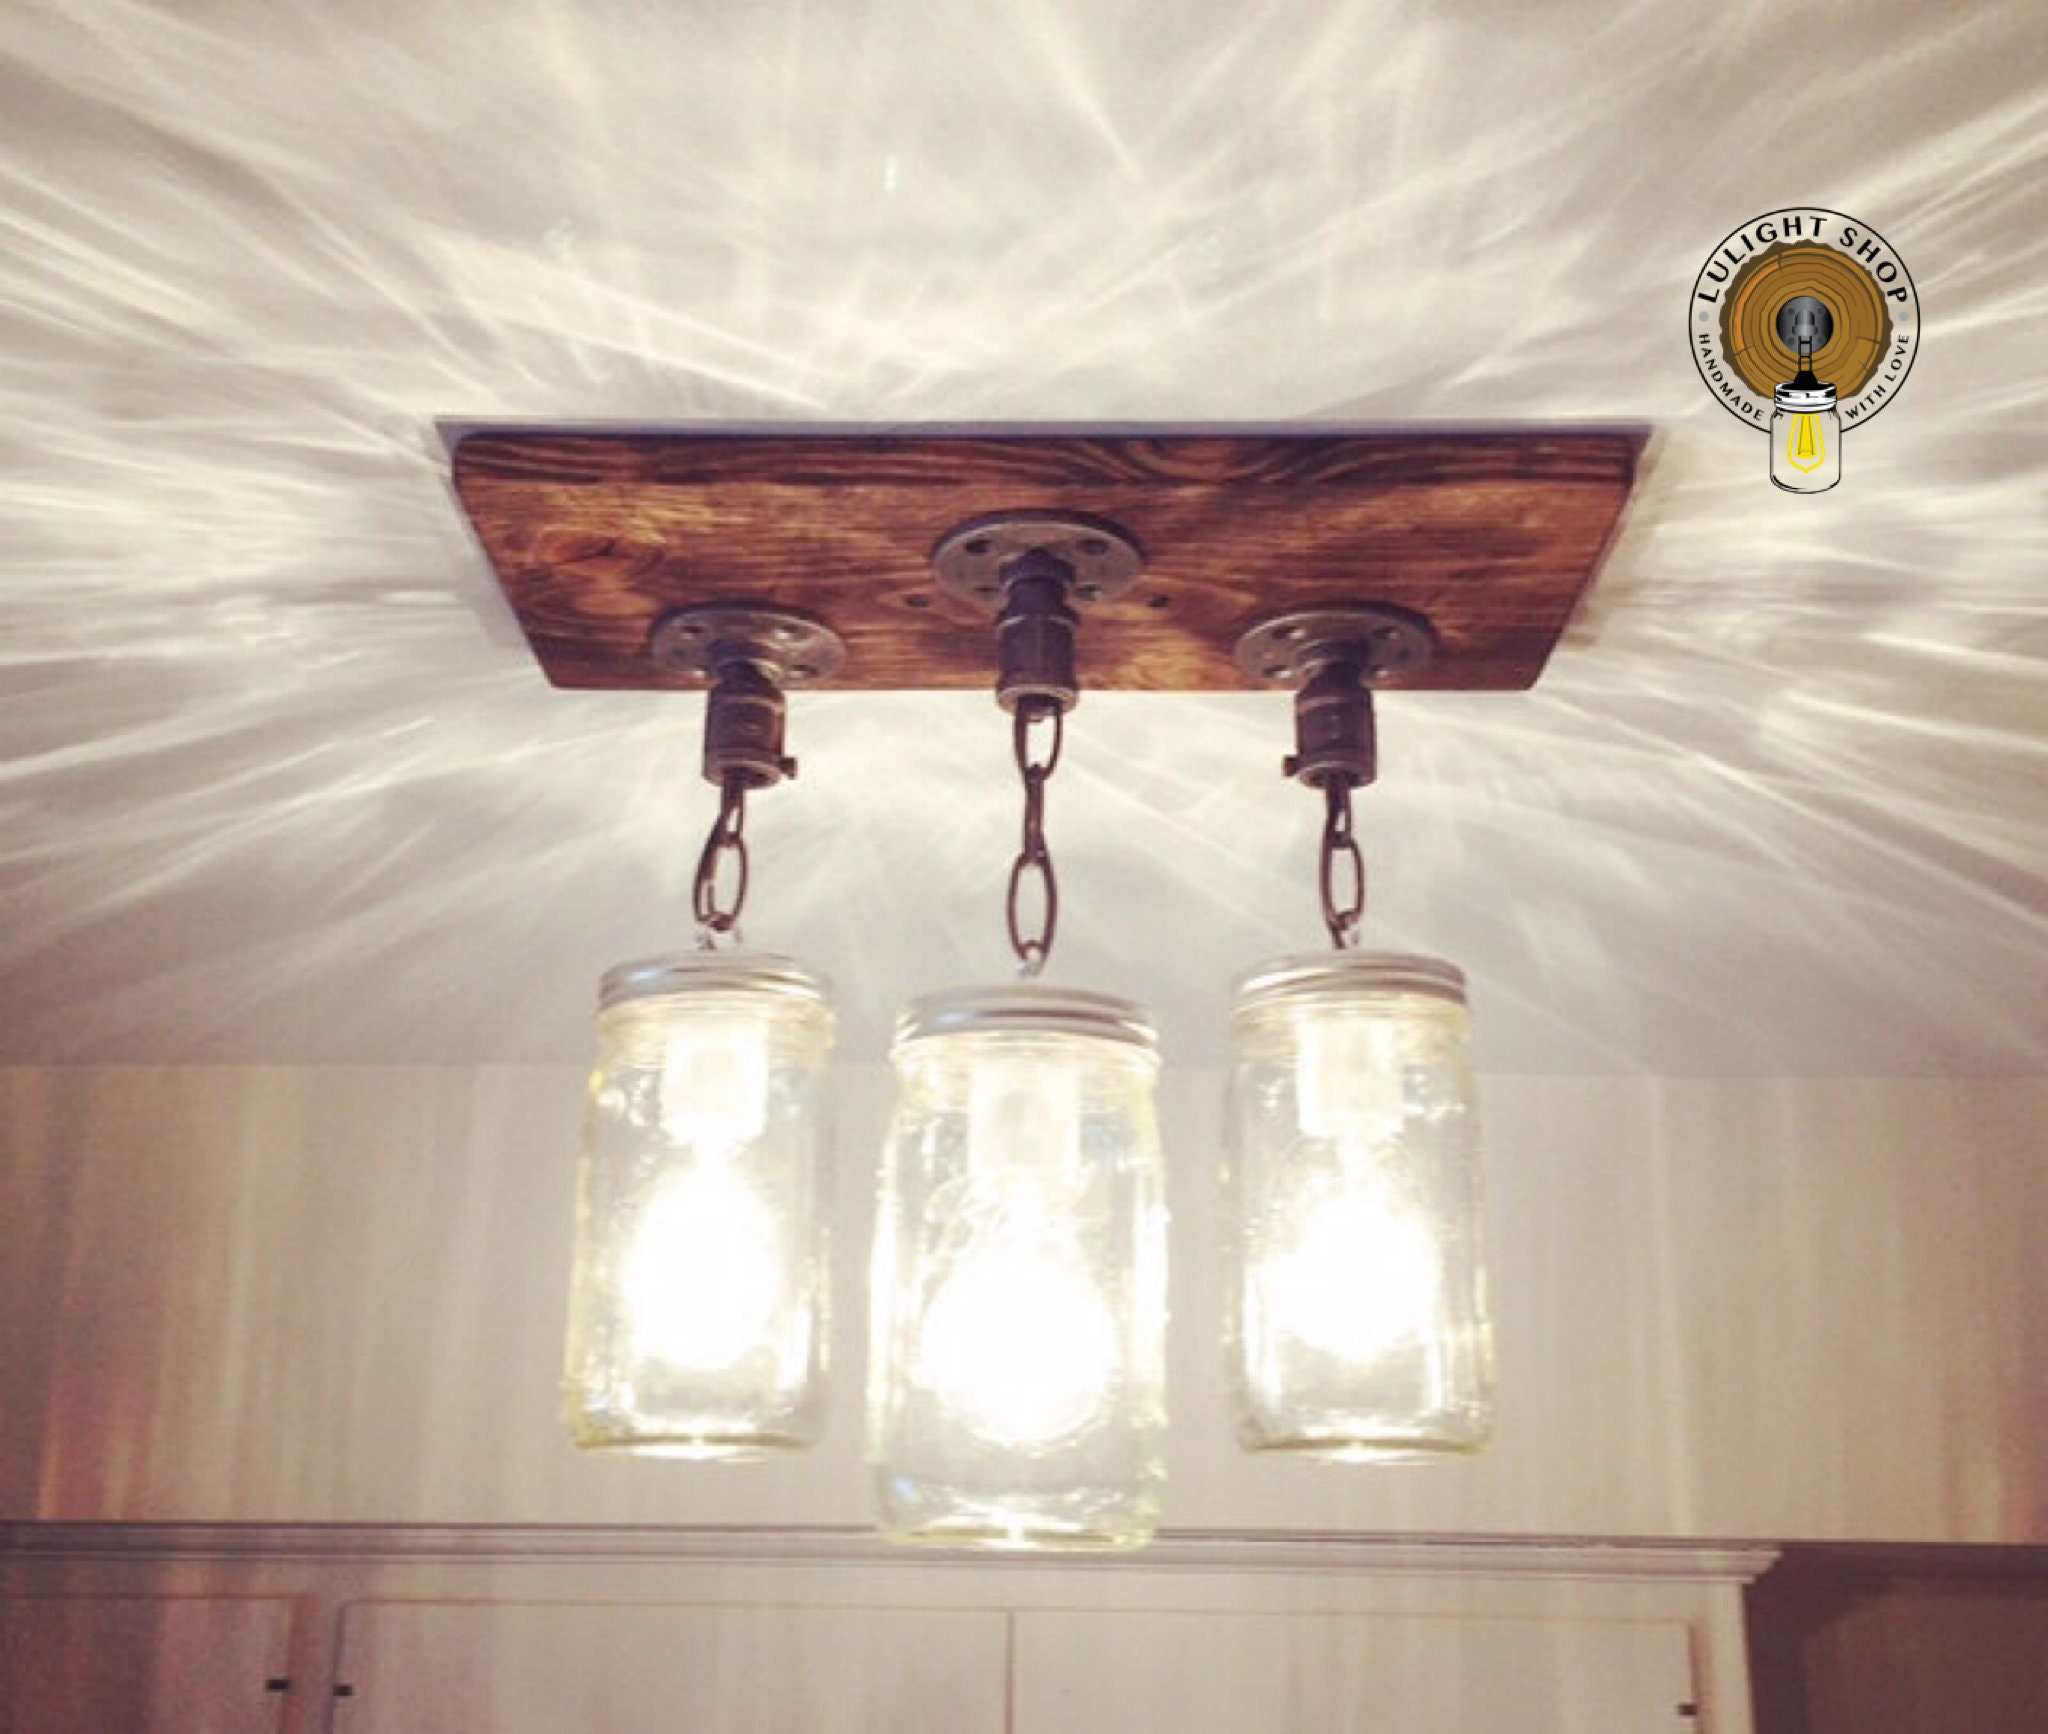 Just Reduced Rustic Handmade 3 Bulb Hanging Light Fixture Or: Rustic Industrial Modern Handmade Mason Jar Chandelier